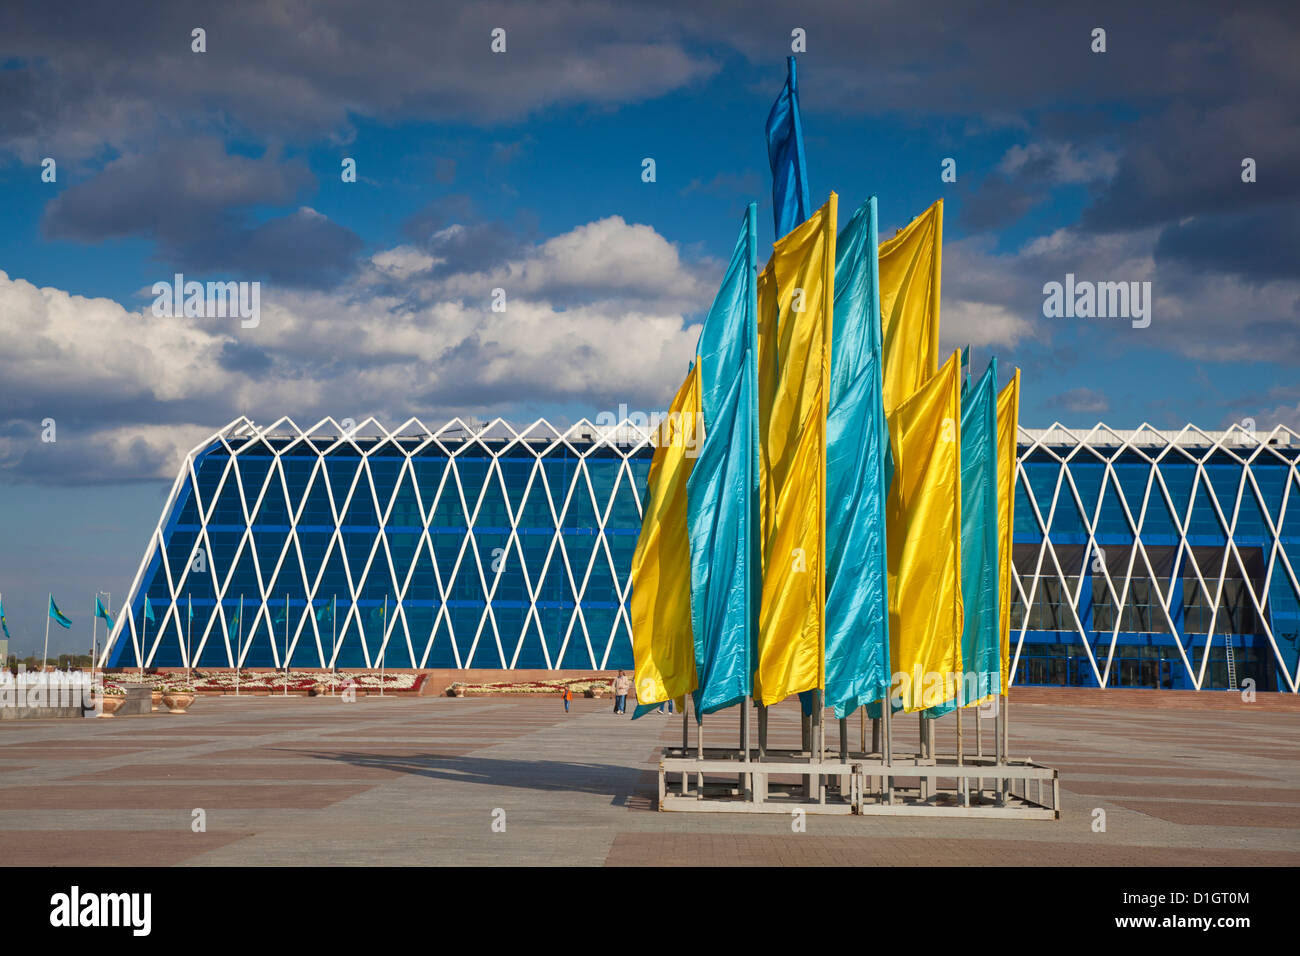 Palace of Independence, Astana, Kazakhstan, Central Asia, Asia - Stock Image